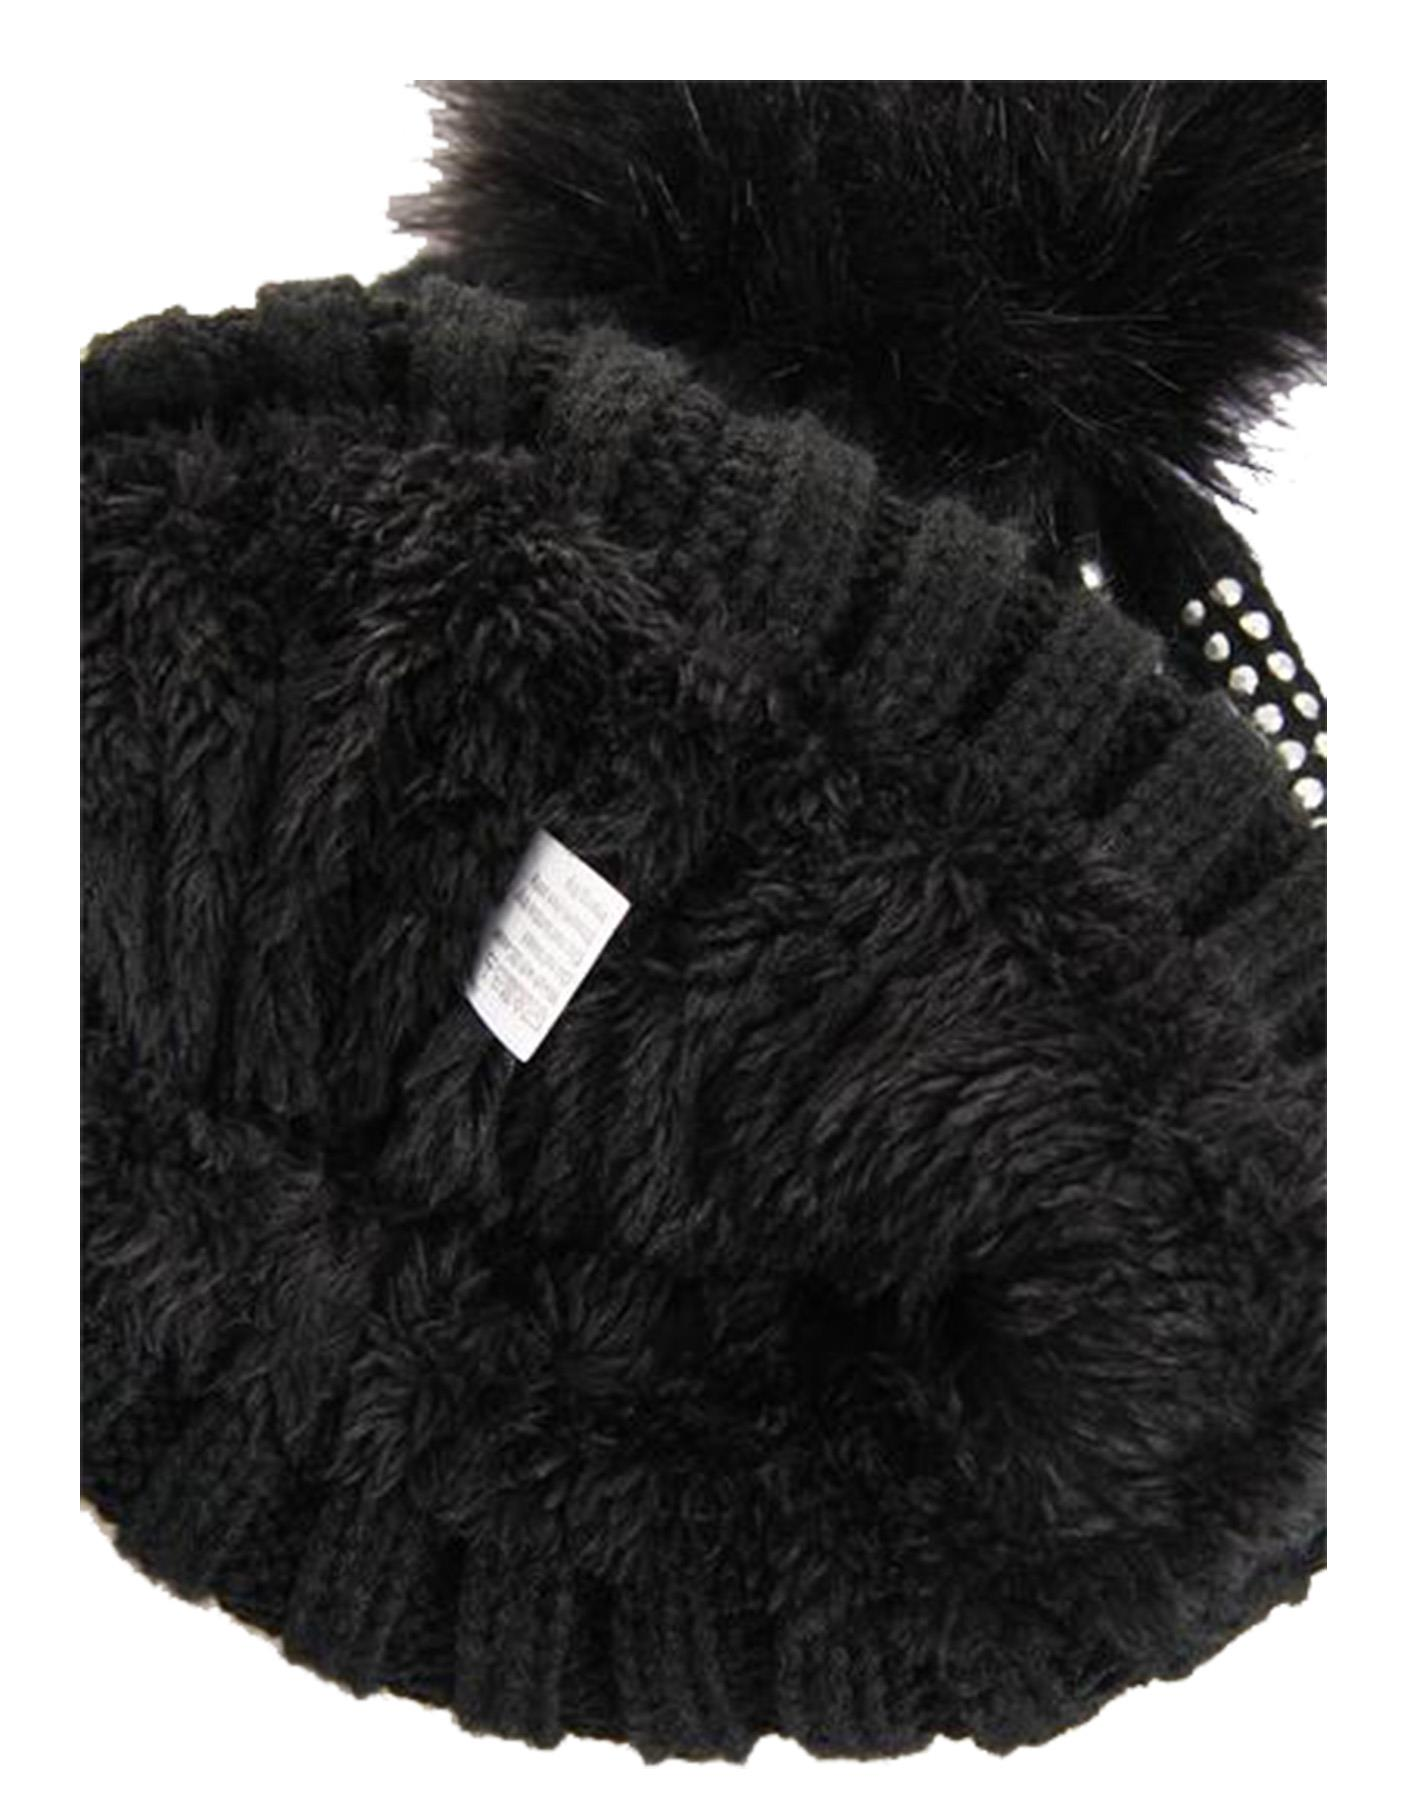 New-Rhinestone-Gem-Embellishment-Synthetic-Fur-Pom-Pom-Women-s-Beanie-Hat thumbnail 8